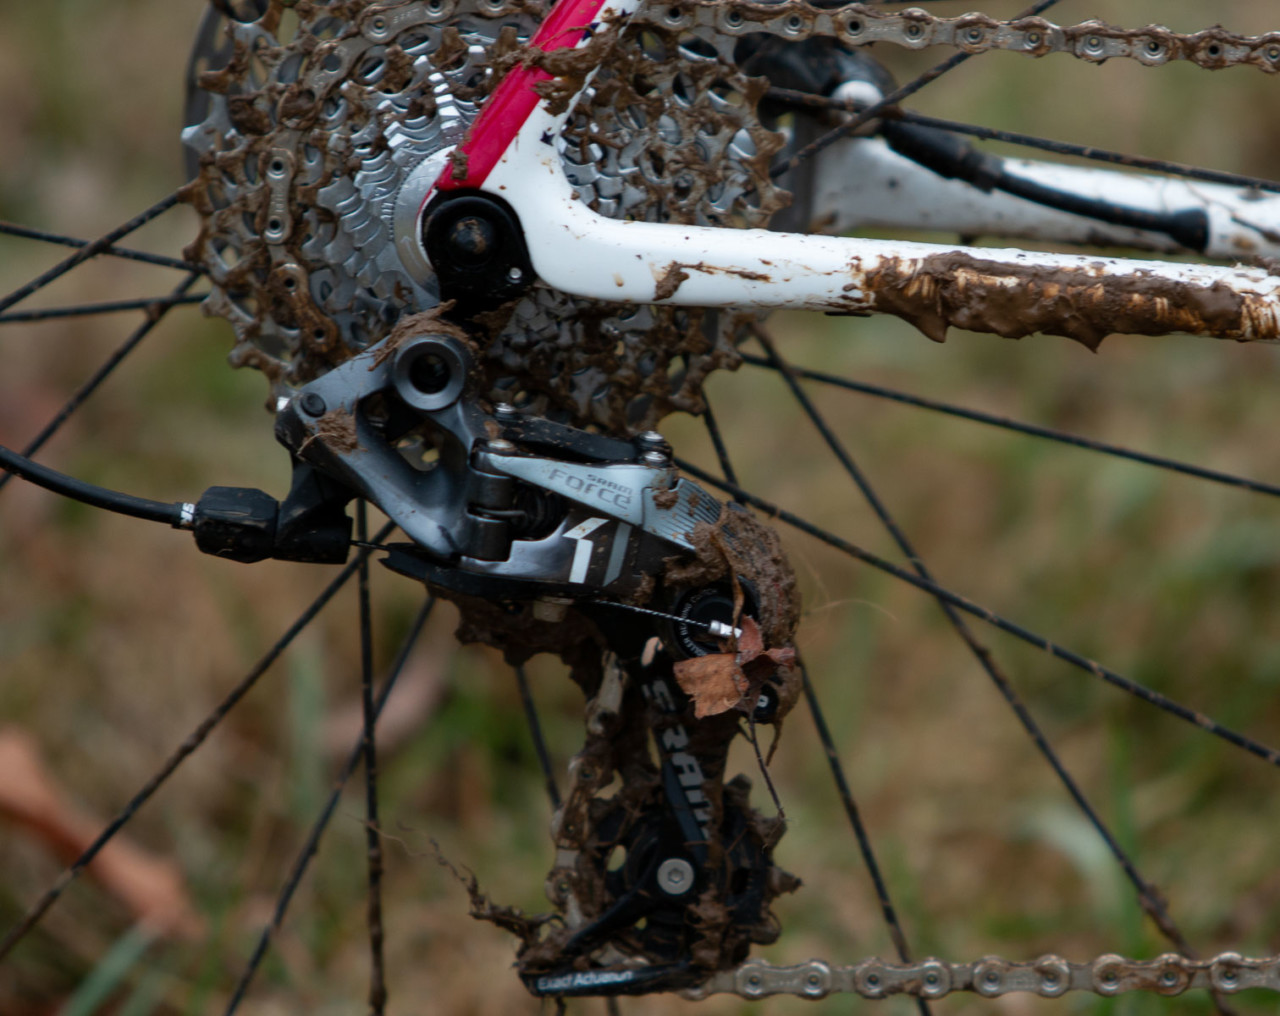 Hyde's derailleur hanger survived intact. Stephen Hyde's title-winning Cannondale. 2018 Cyclocross National Championships V2. Louisville, KY. © Cyclocross Magazine